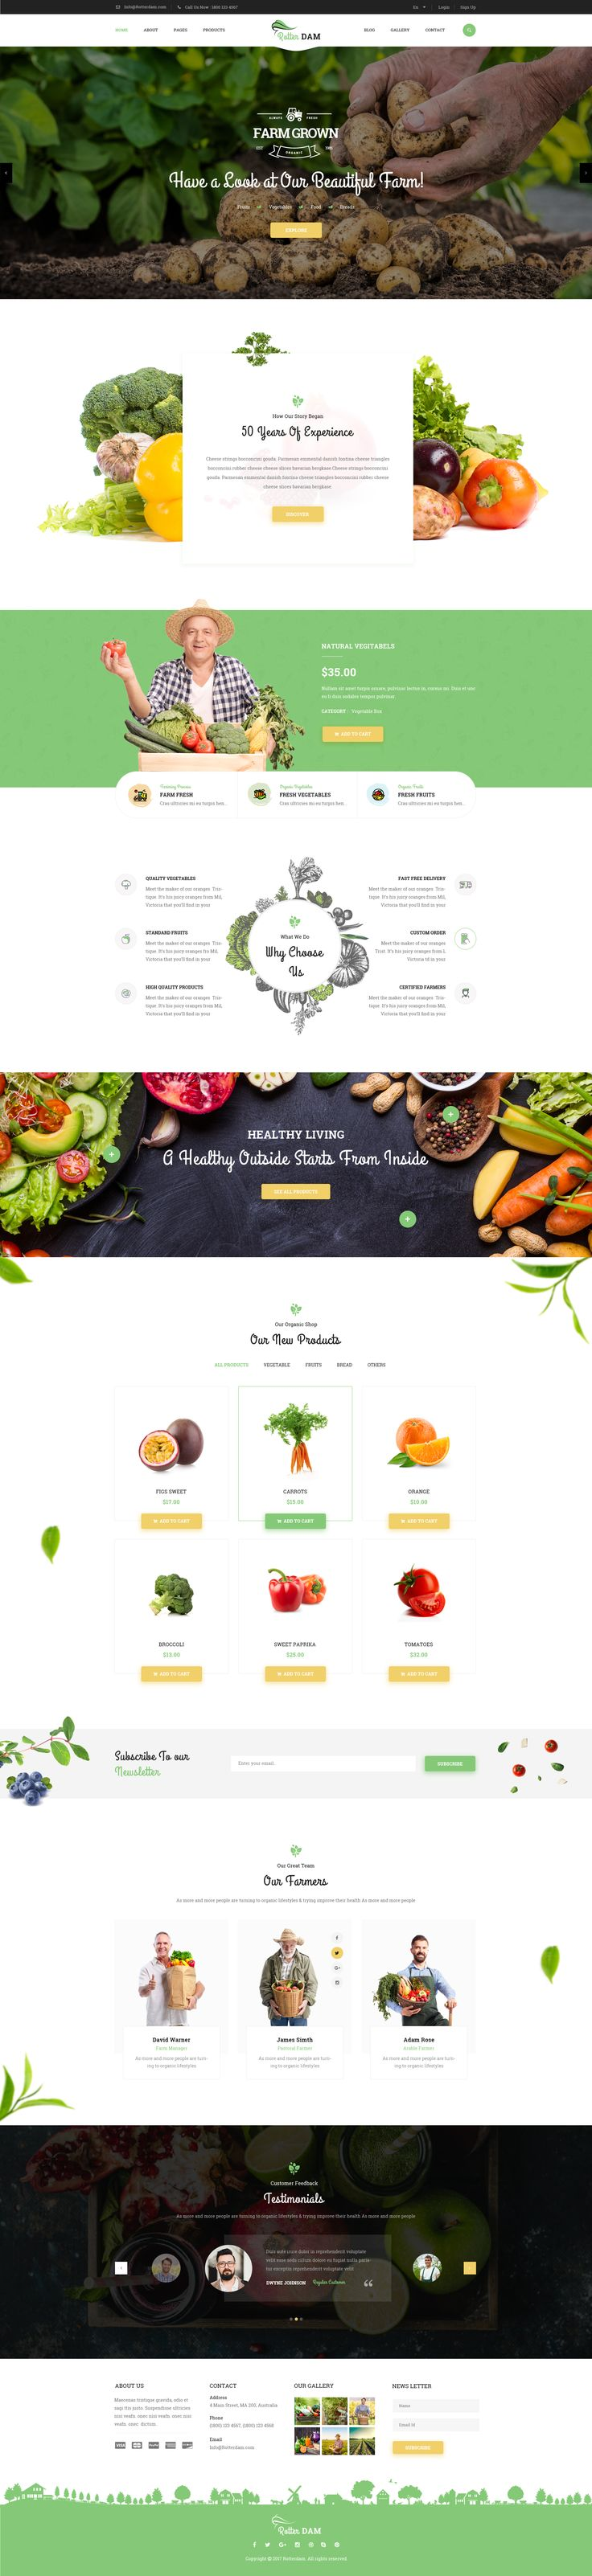 Rotterdam - Agri & Farming PSD Template #agriculture #business #farming • Download ➝ https://themeforest.net/item/rotterdam-agri-farming-psd-template/19667190?ref=pxcr